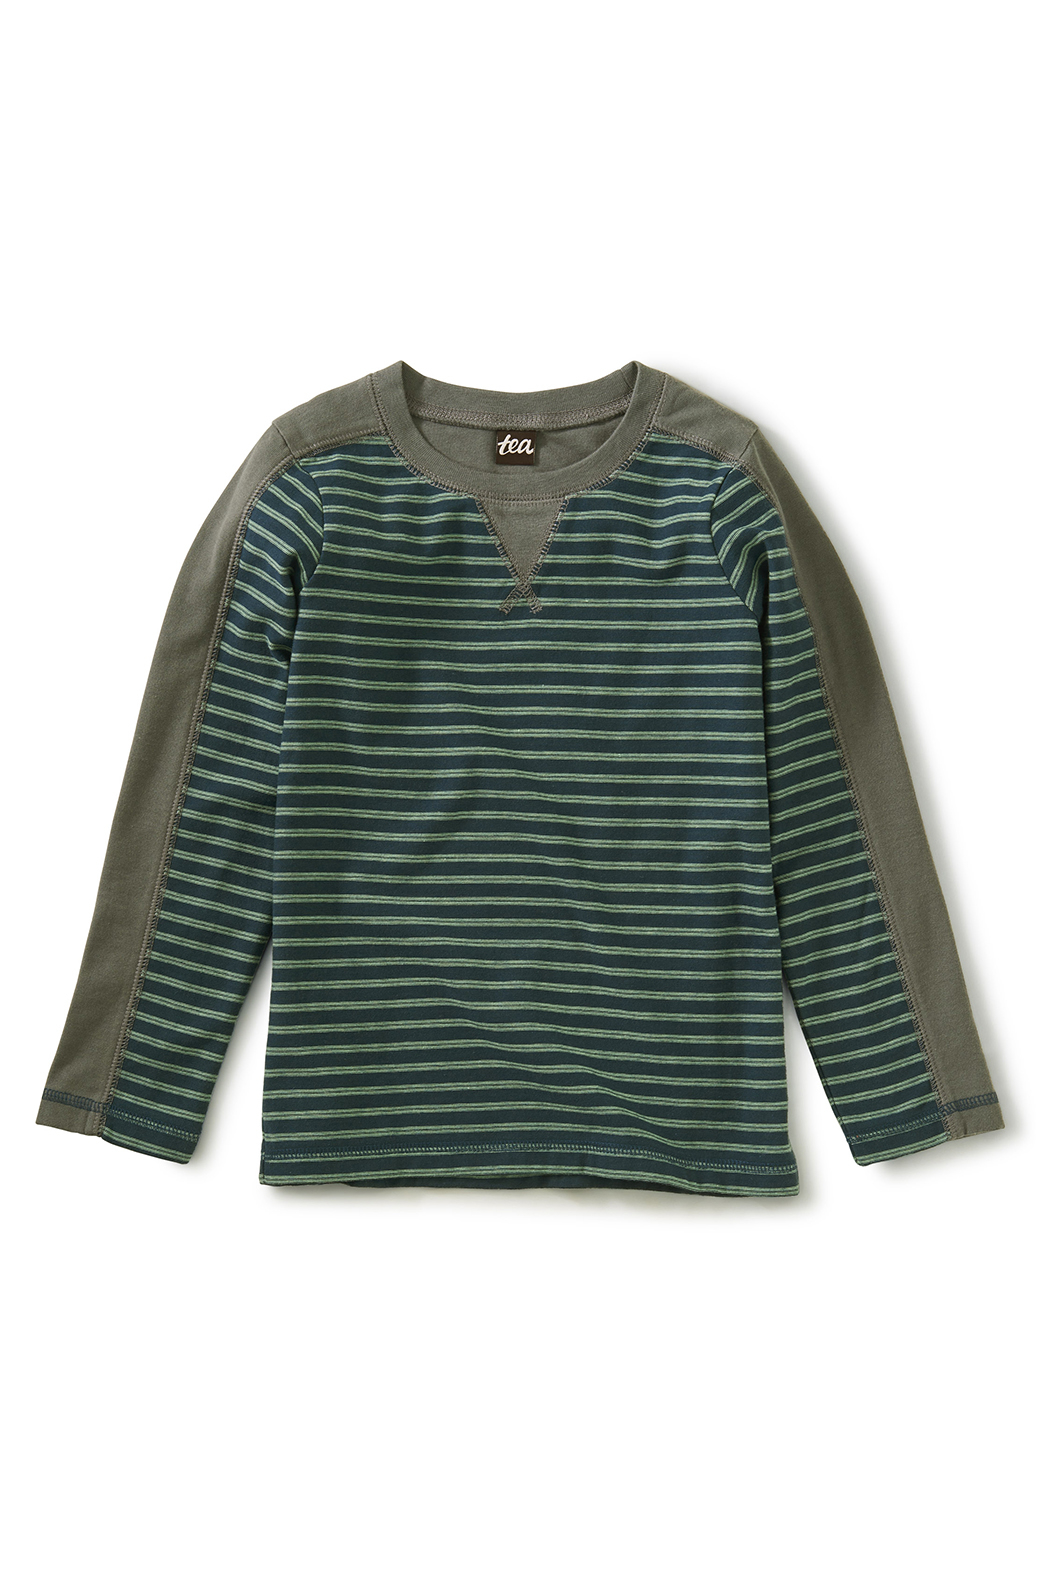 Tea Collection Striped Sporty Top - Main Image